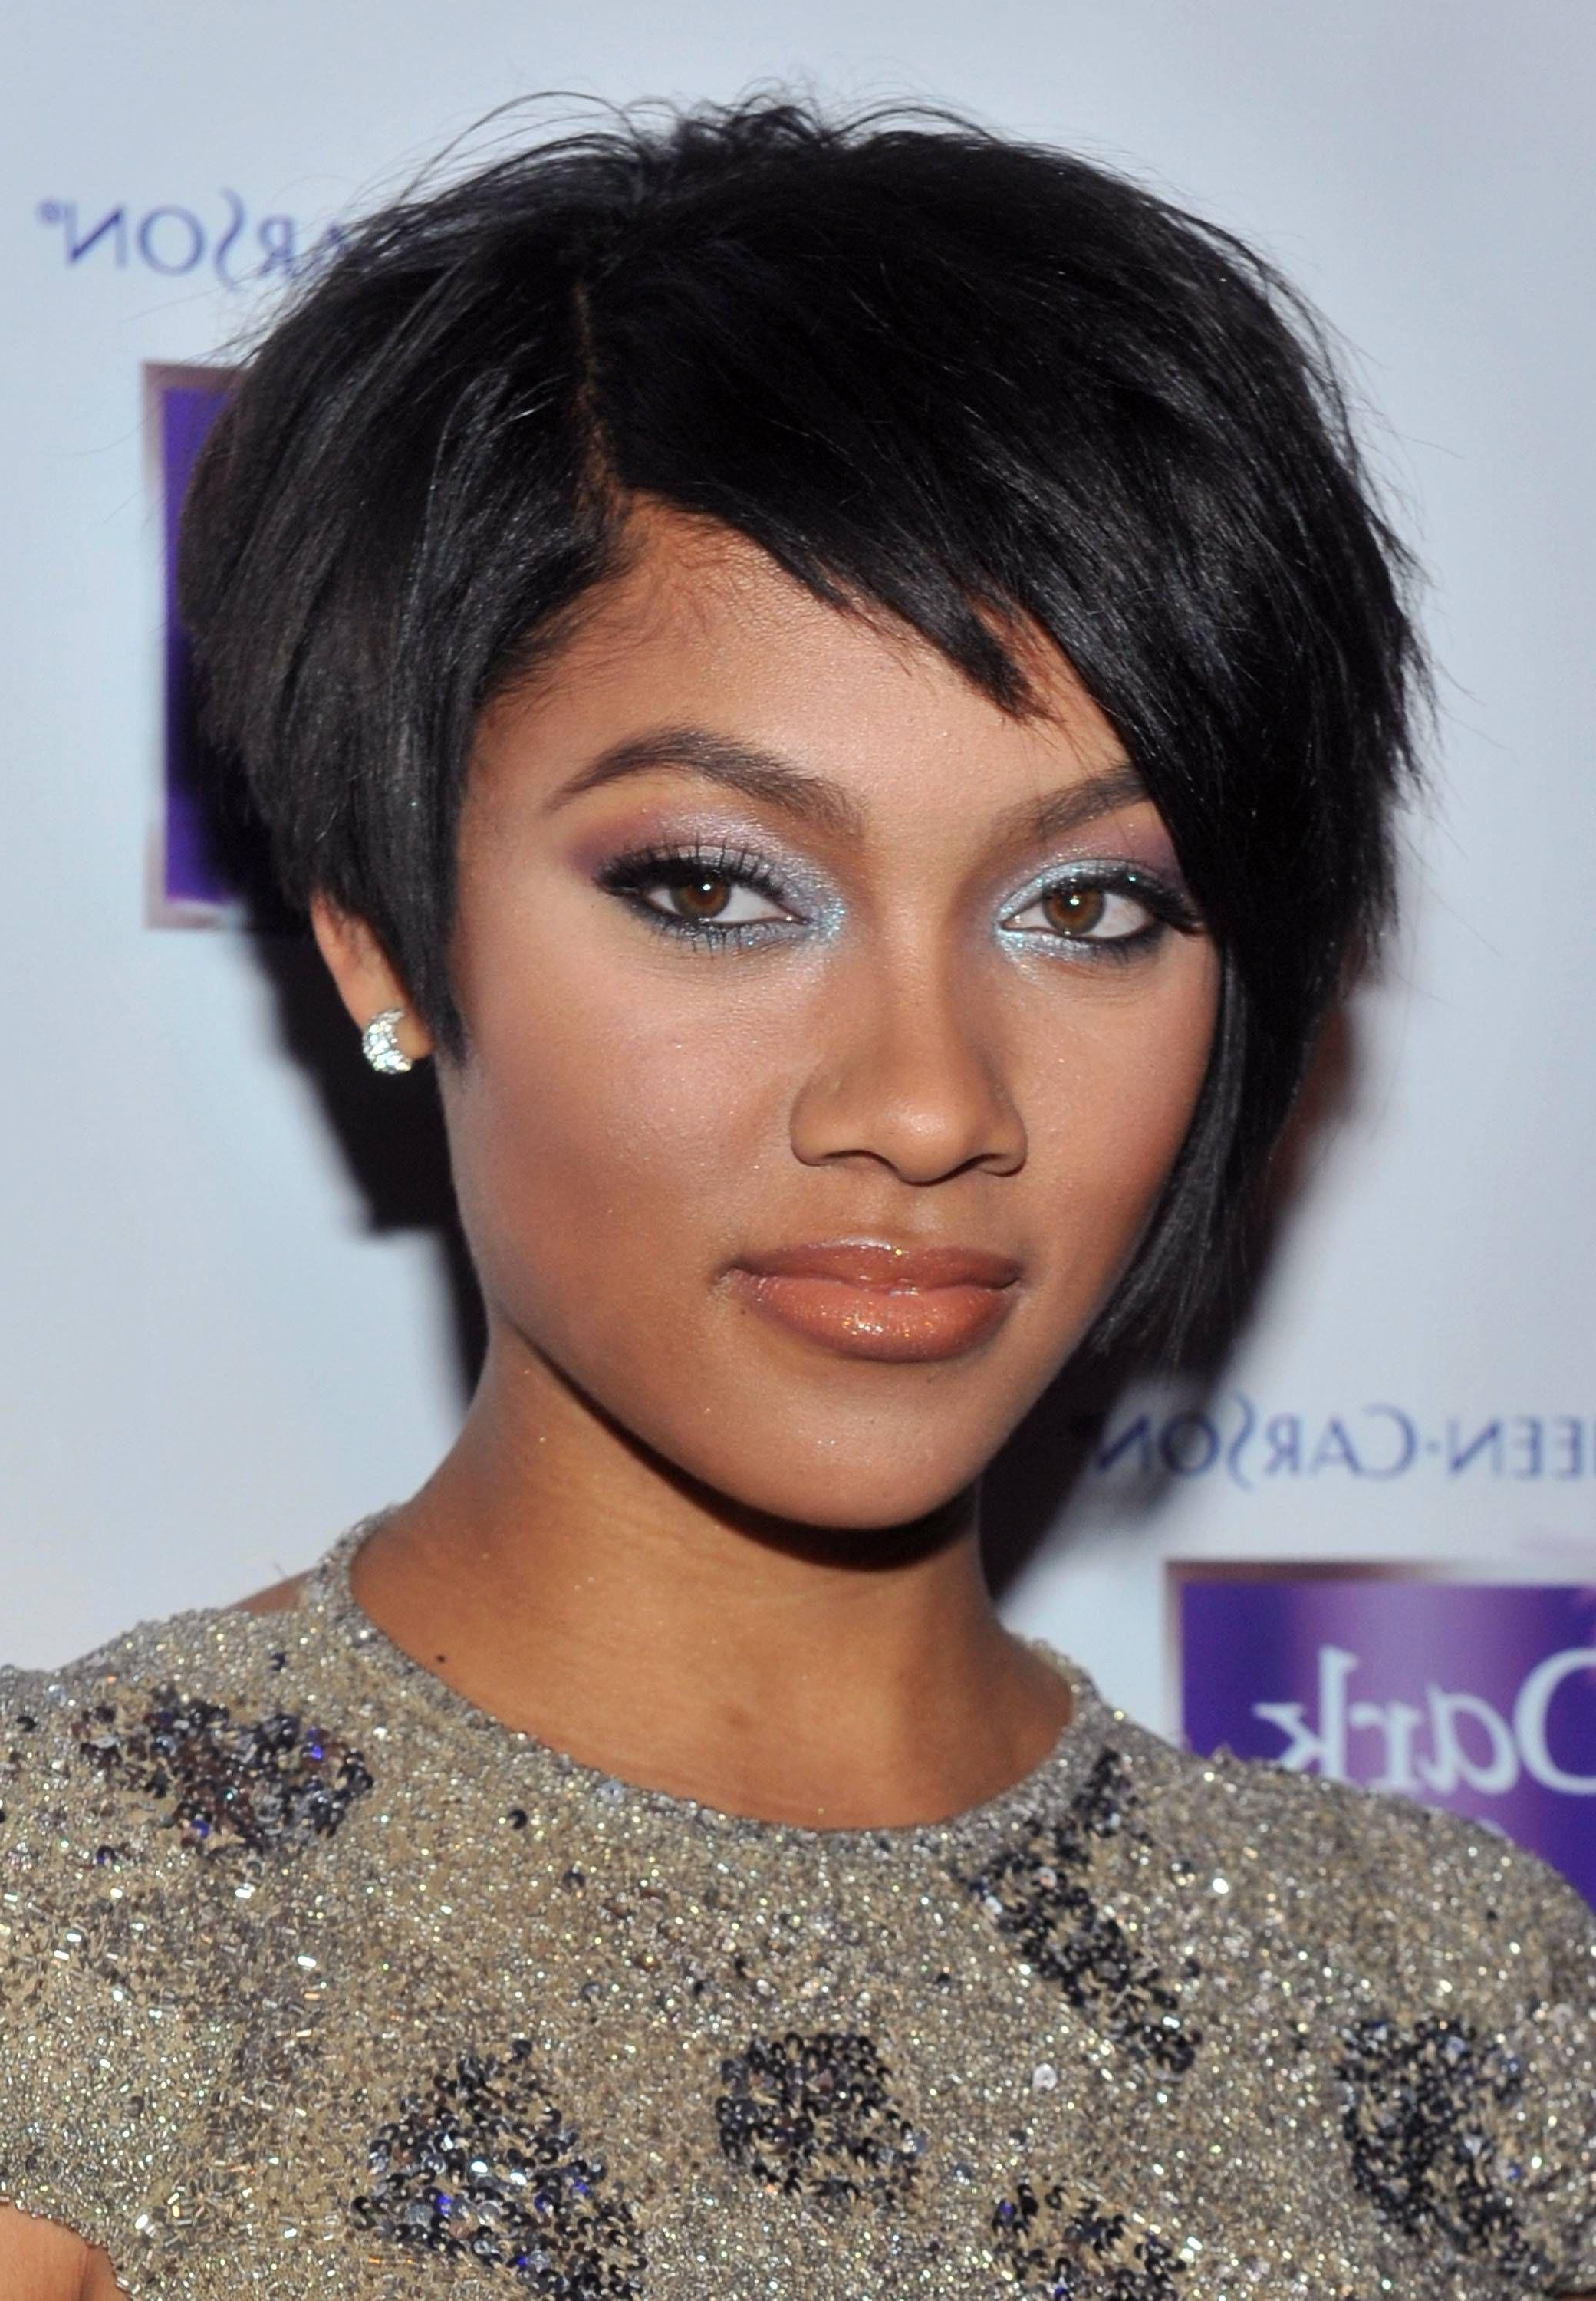 Beautiful Short Hairstyles For Black Women With Round Faces 2016 Concept Throughout Short Haircuts For Black Women Round Face (View 9 of 25)